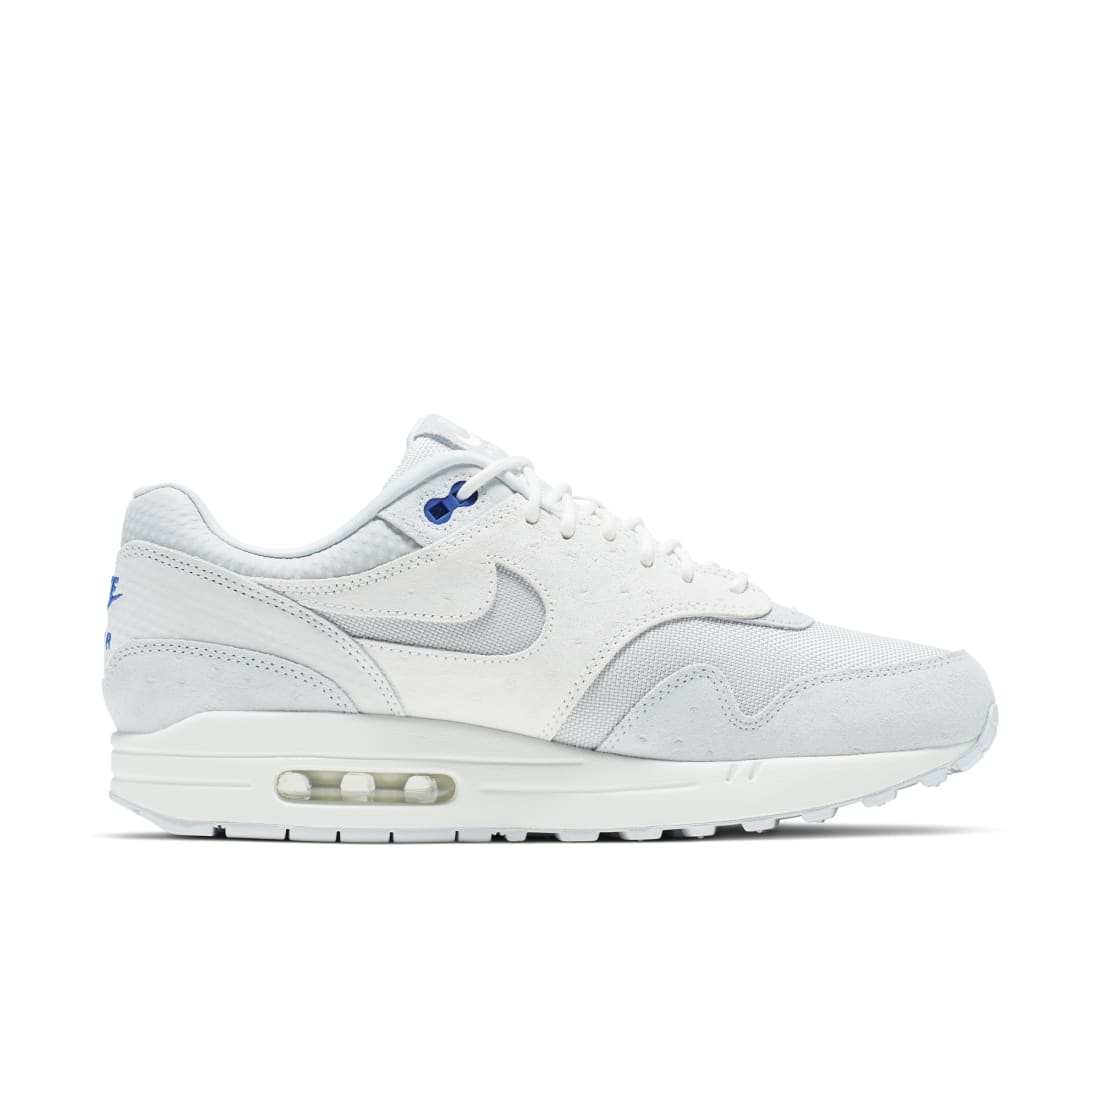 Nike Air Max 1 Pure Platinum Racer Blue | Nike | Sole Collector